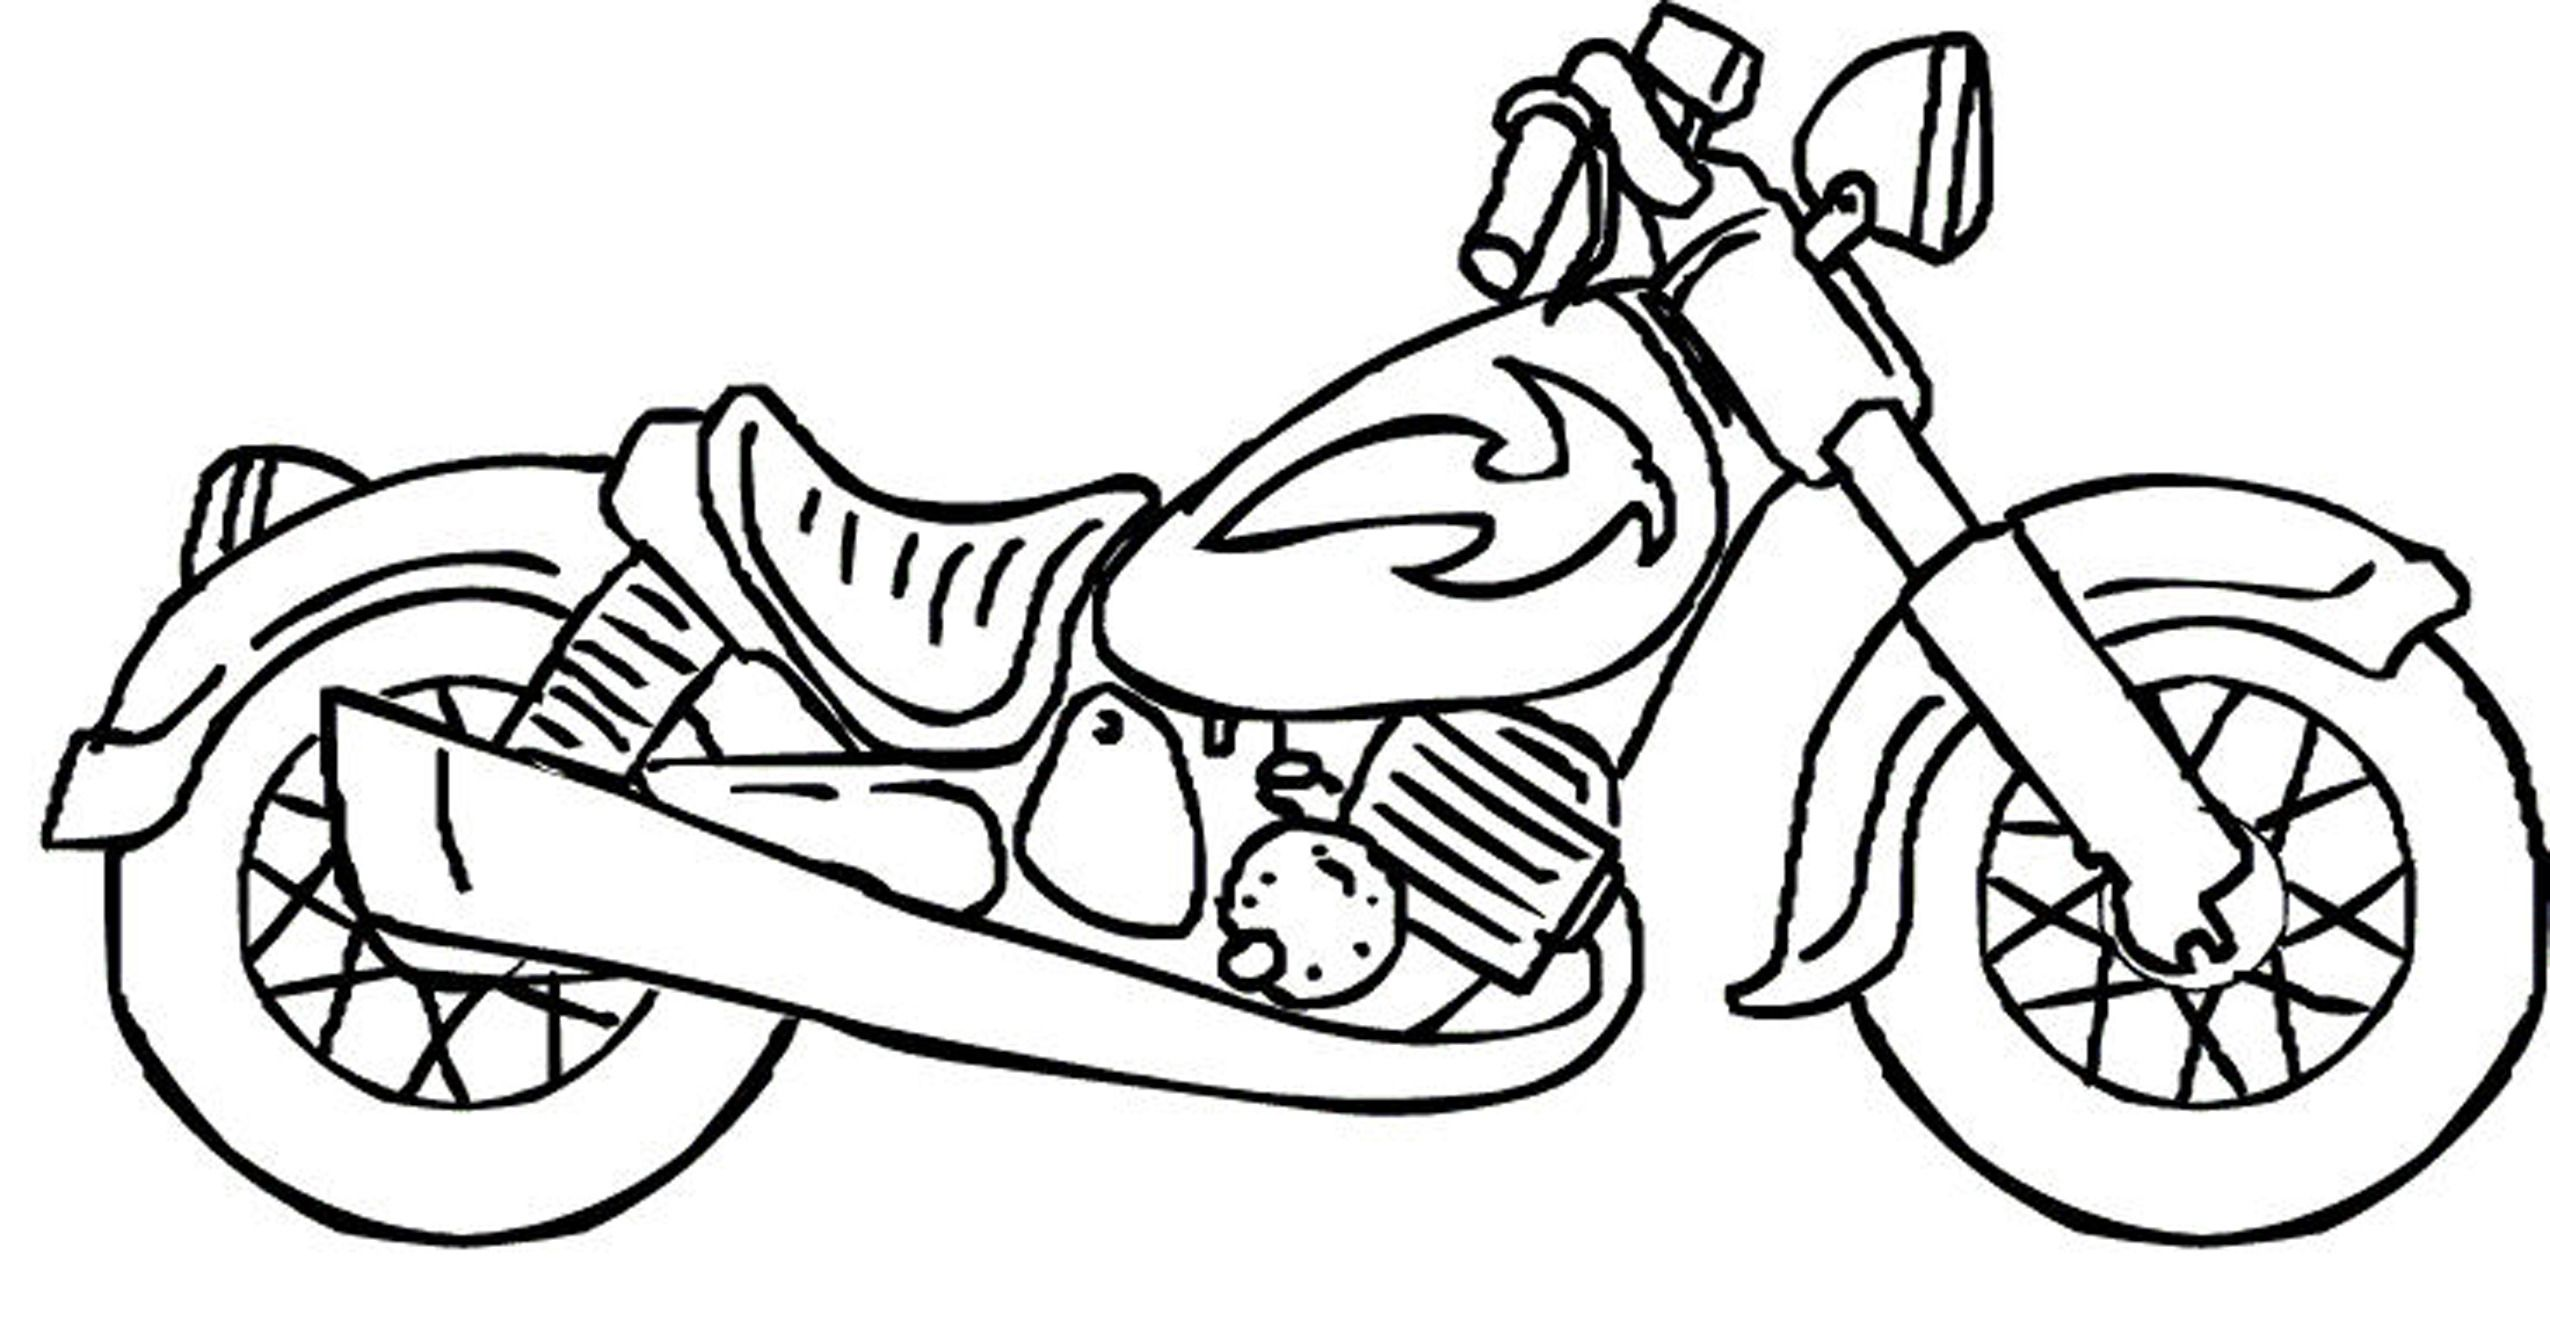 Coloring Pages For Boys Cars Coloring Pages For Boys Coloring